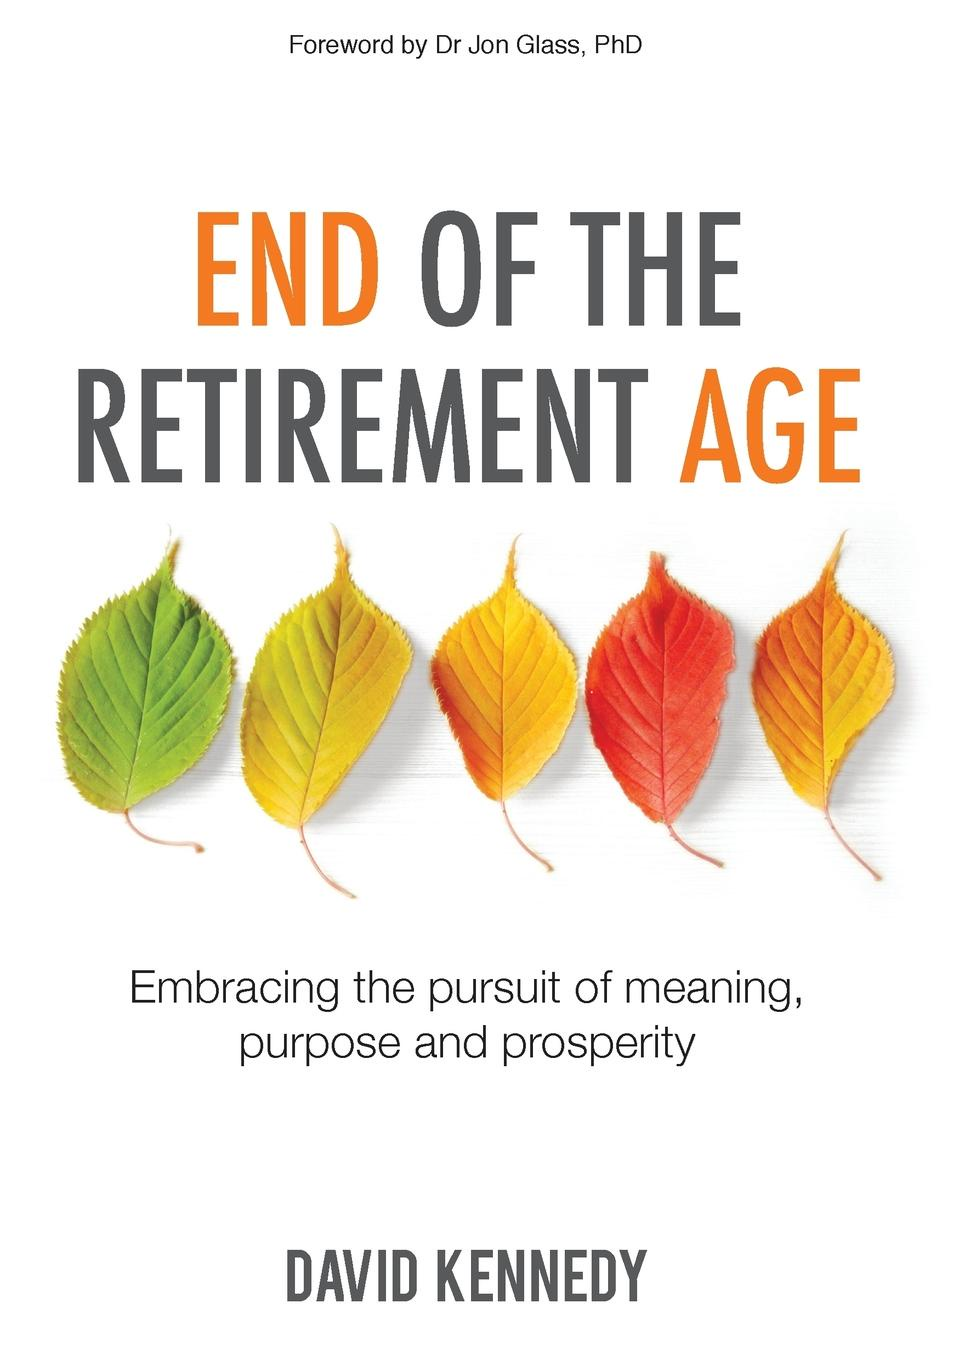 лучшая цена David Kennedy End of the Retirement Age. Embracing the pursuit of meaning, purpose and prosperity